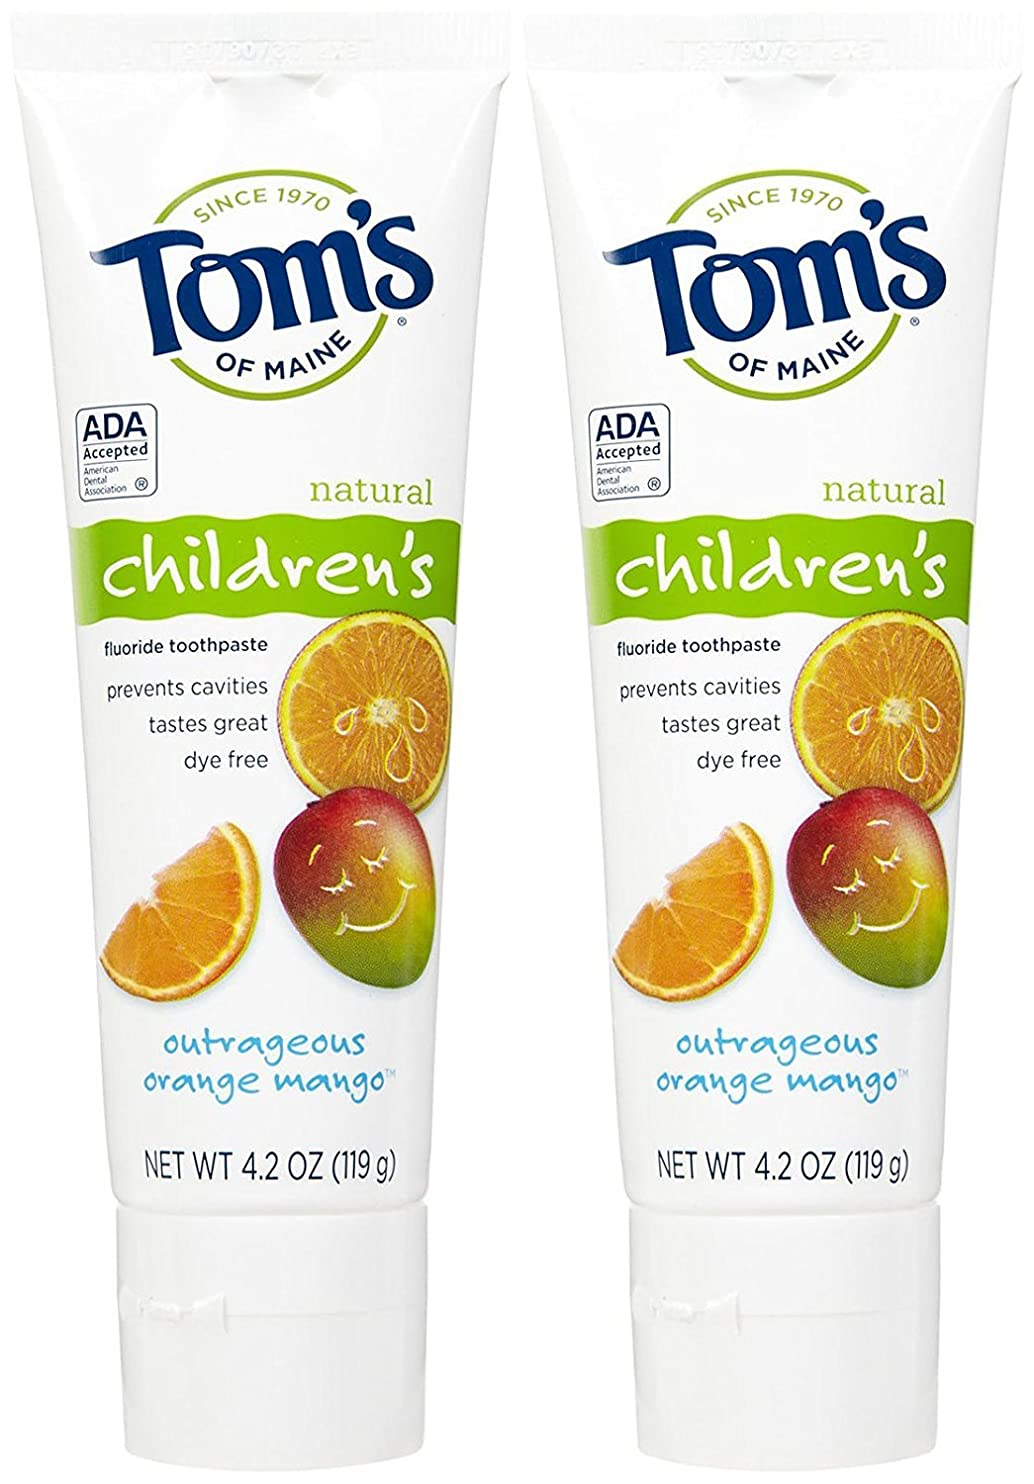 Tom's of Maine Anticavity Fluoride Children's Toothpaste, Outrageous Orange-Mango - 4.2 oz - 2 pk by Tom's of Maine